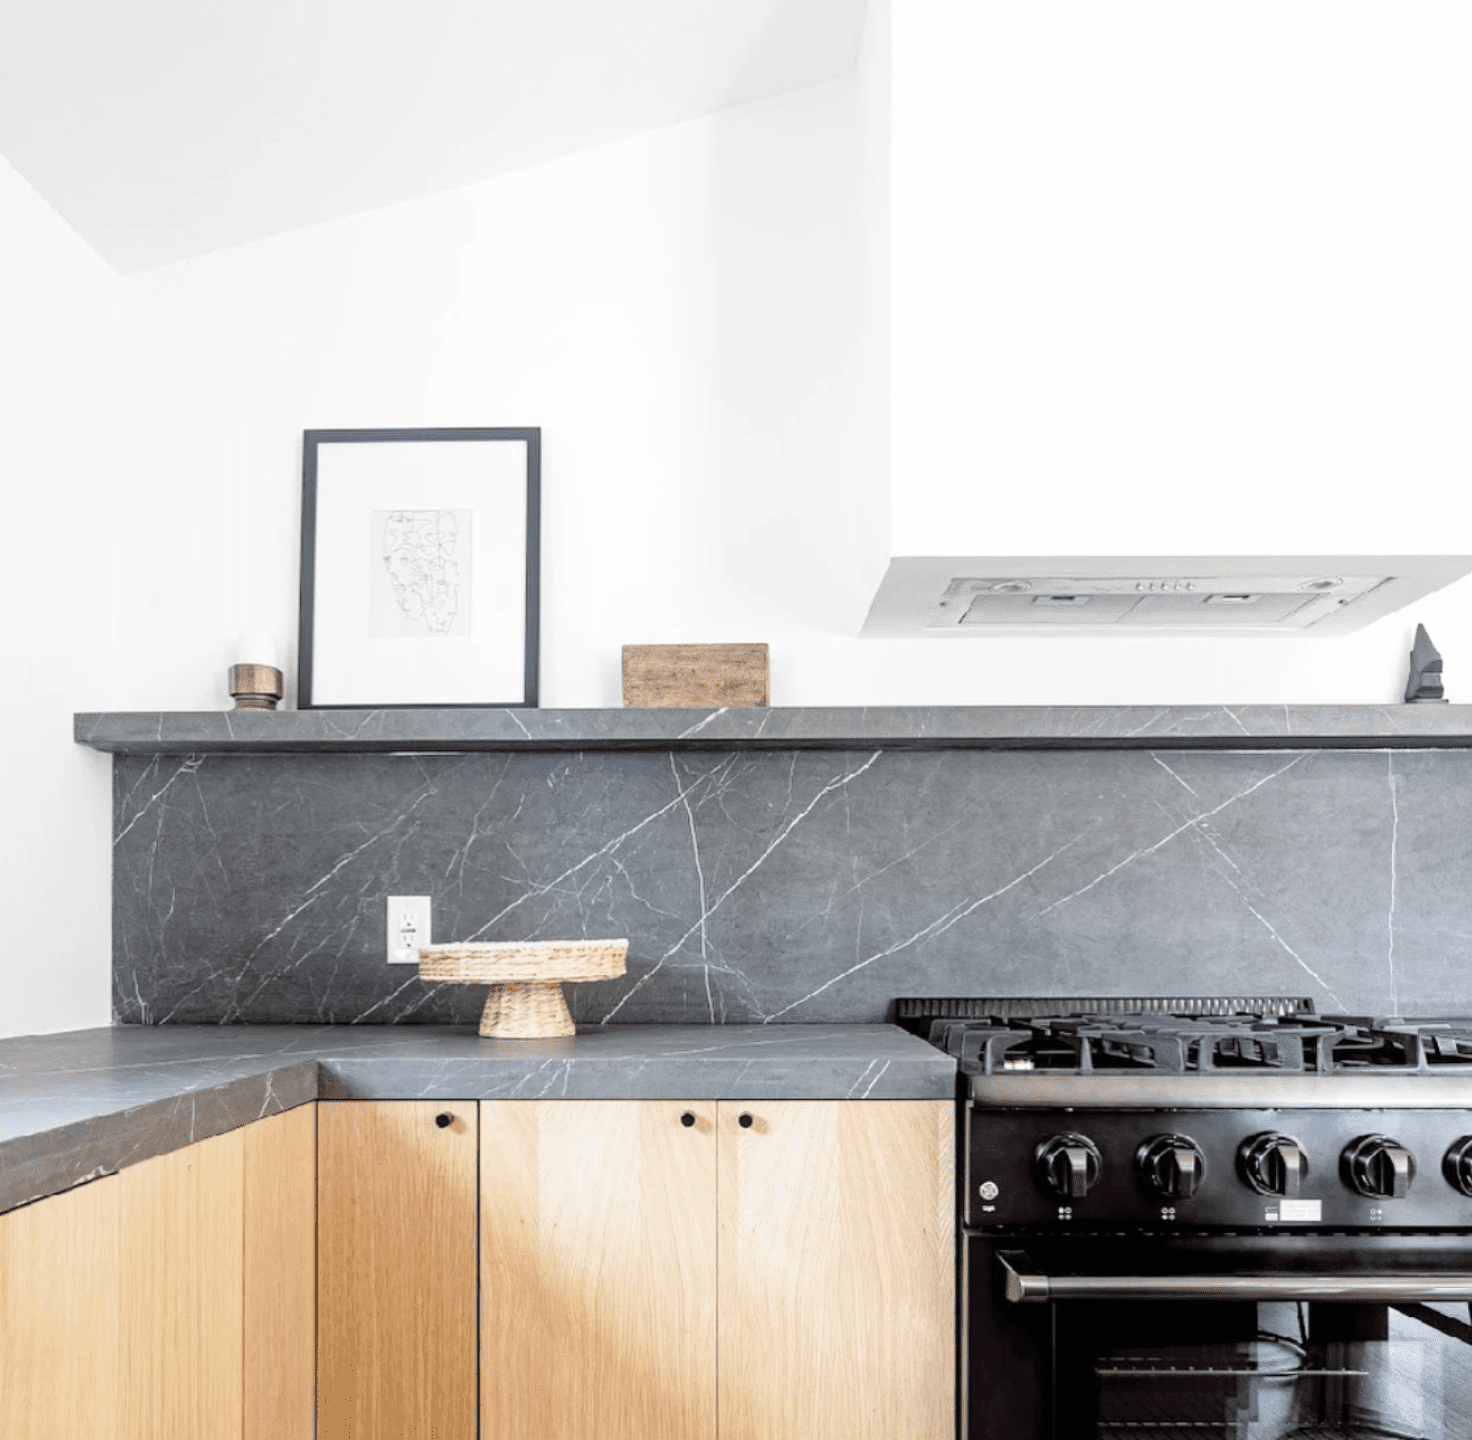 A minimalist kitchen with light wood cabinets and a gray marble backsplash